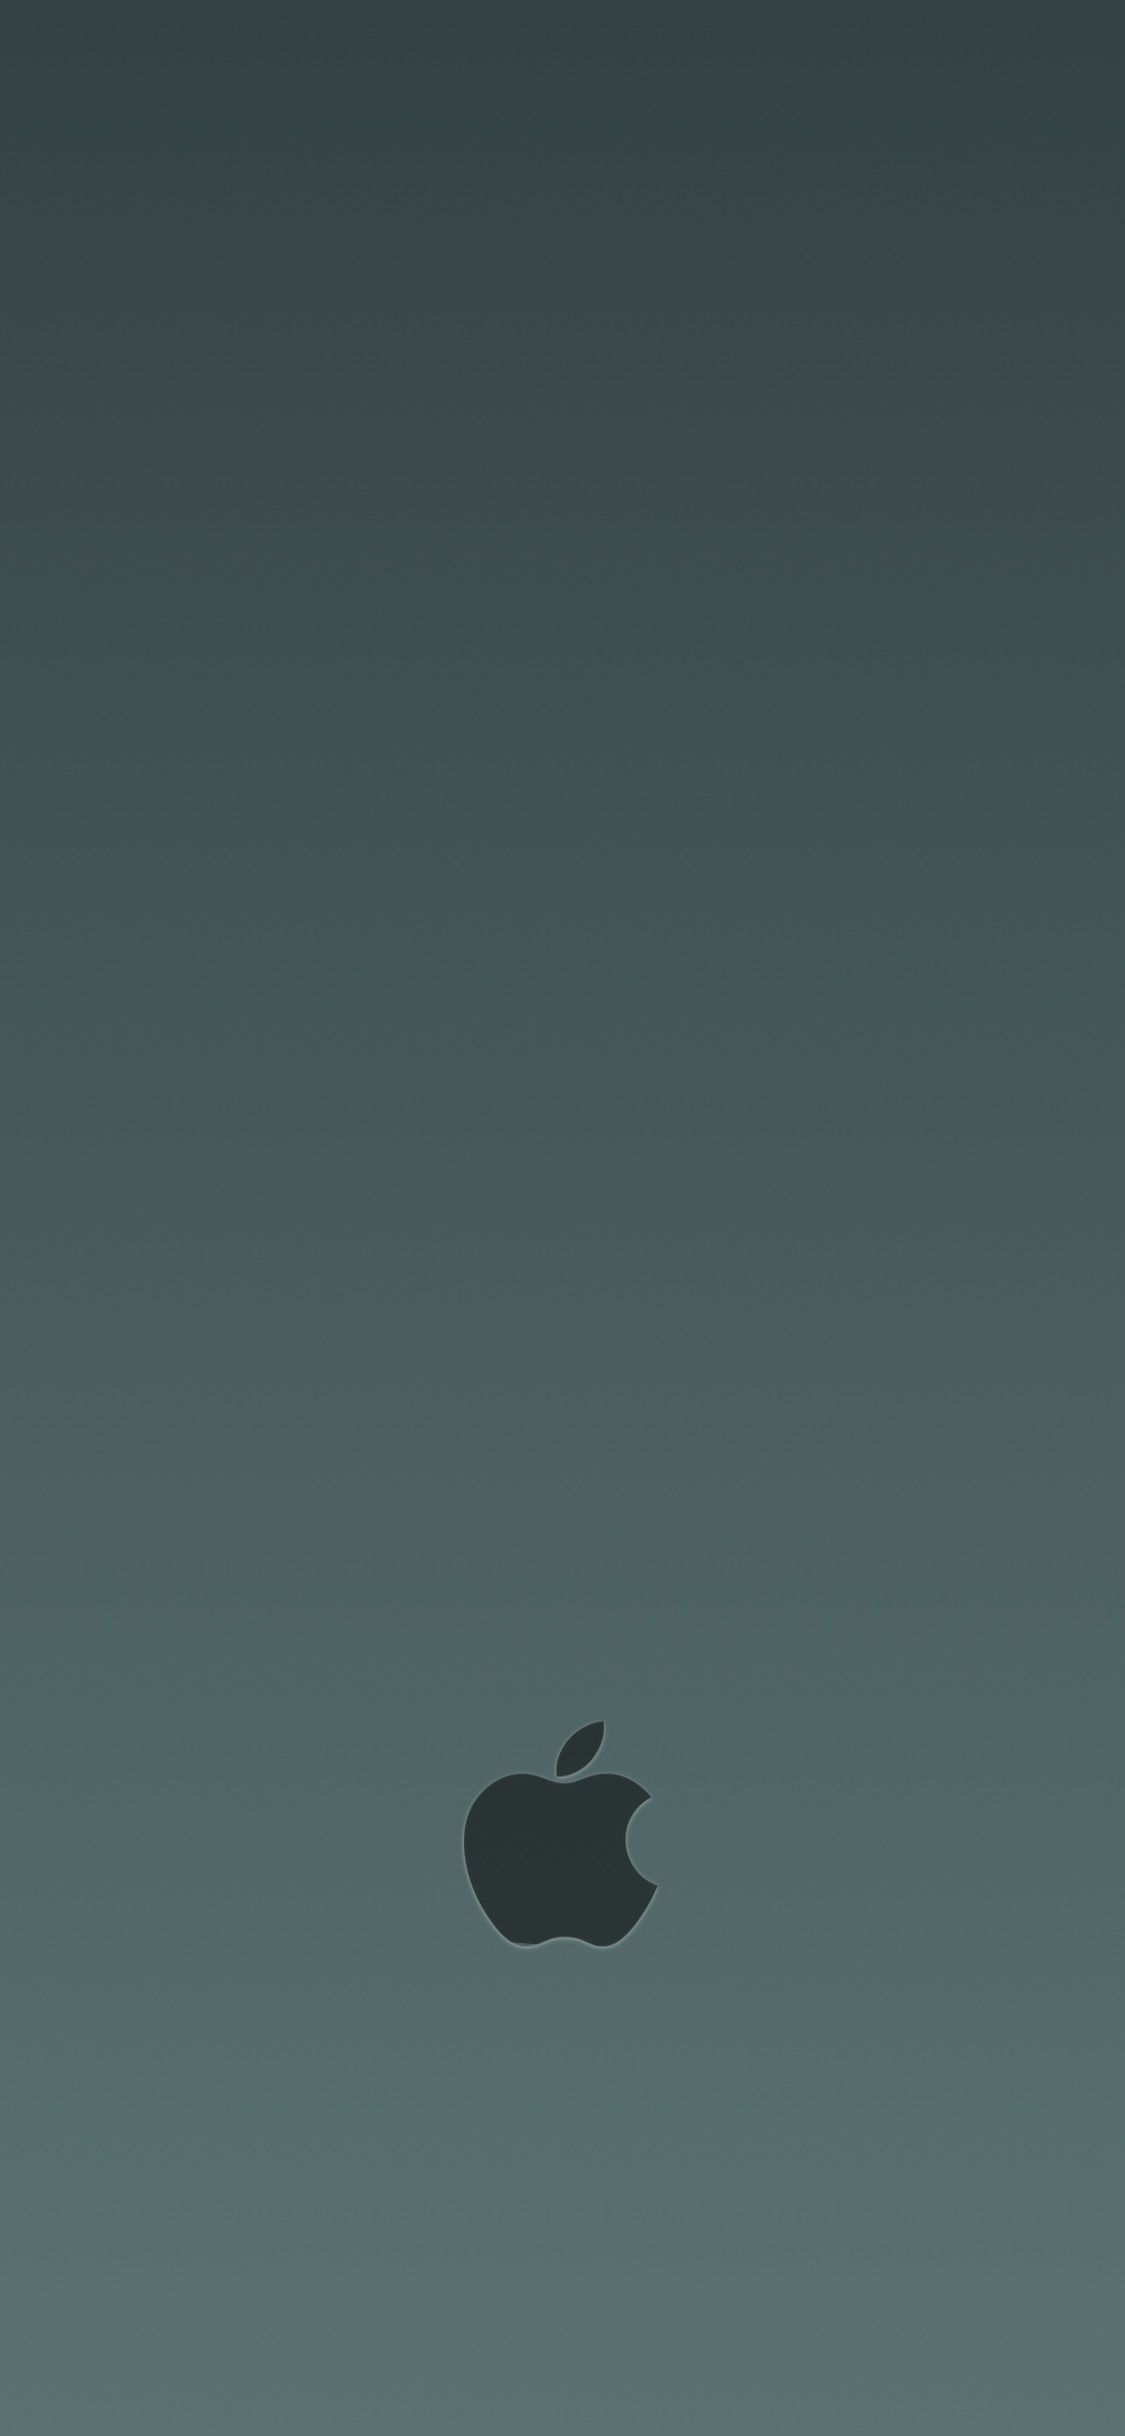 Pin By Privaterayan On Sick Wallpapers Apple Wallpaper Iphone Iphone Wallpaper Apple Wallpaper